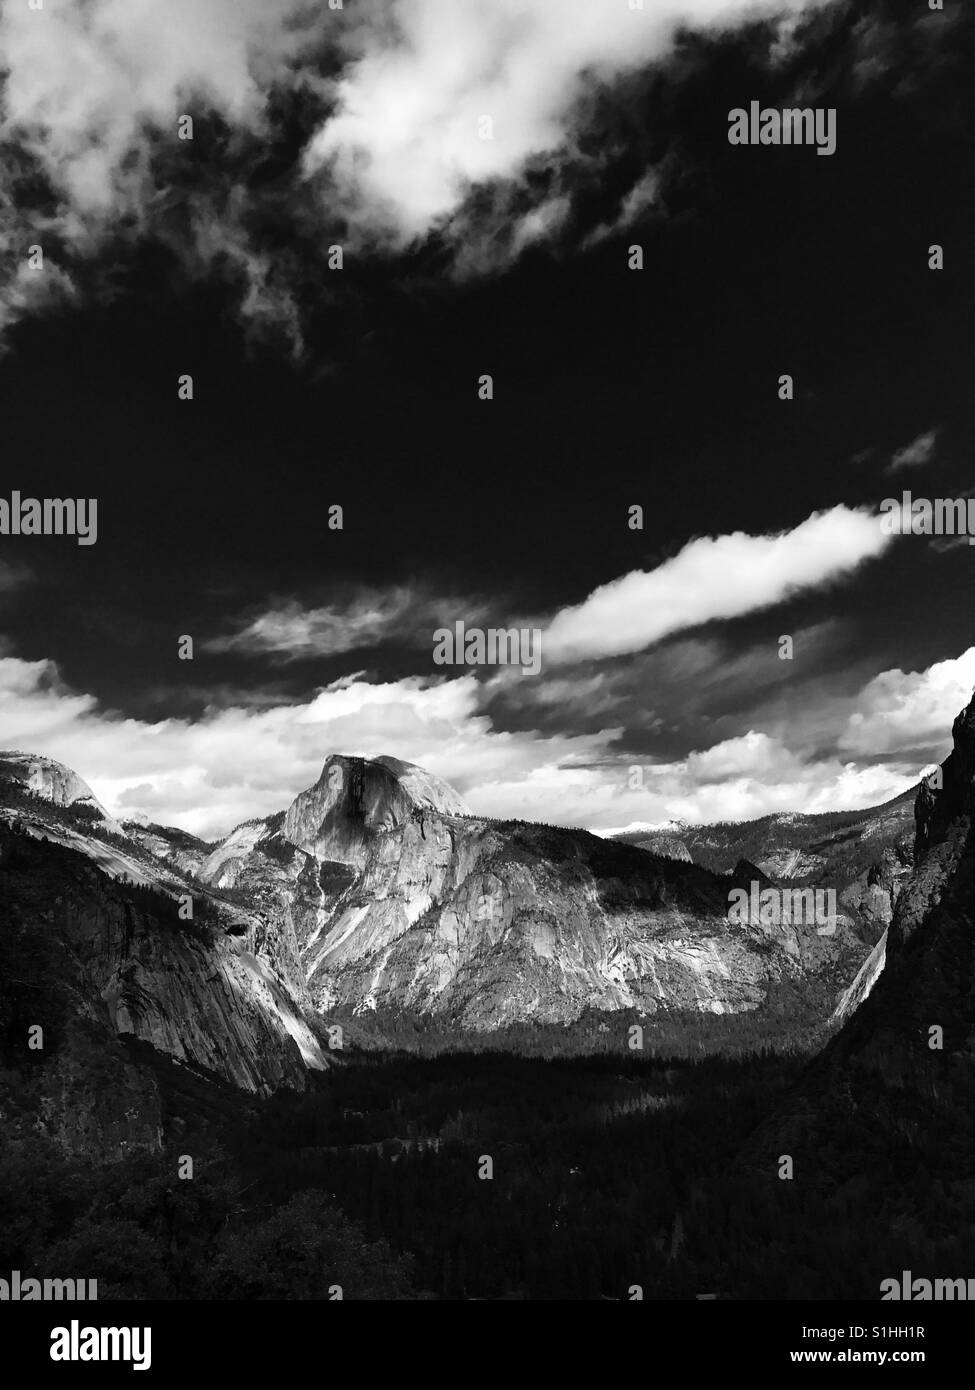 A scenic black and white photo of Half dome and the Yosemite valley. Yosemite national park, California USA. - Stock Image